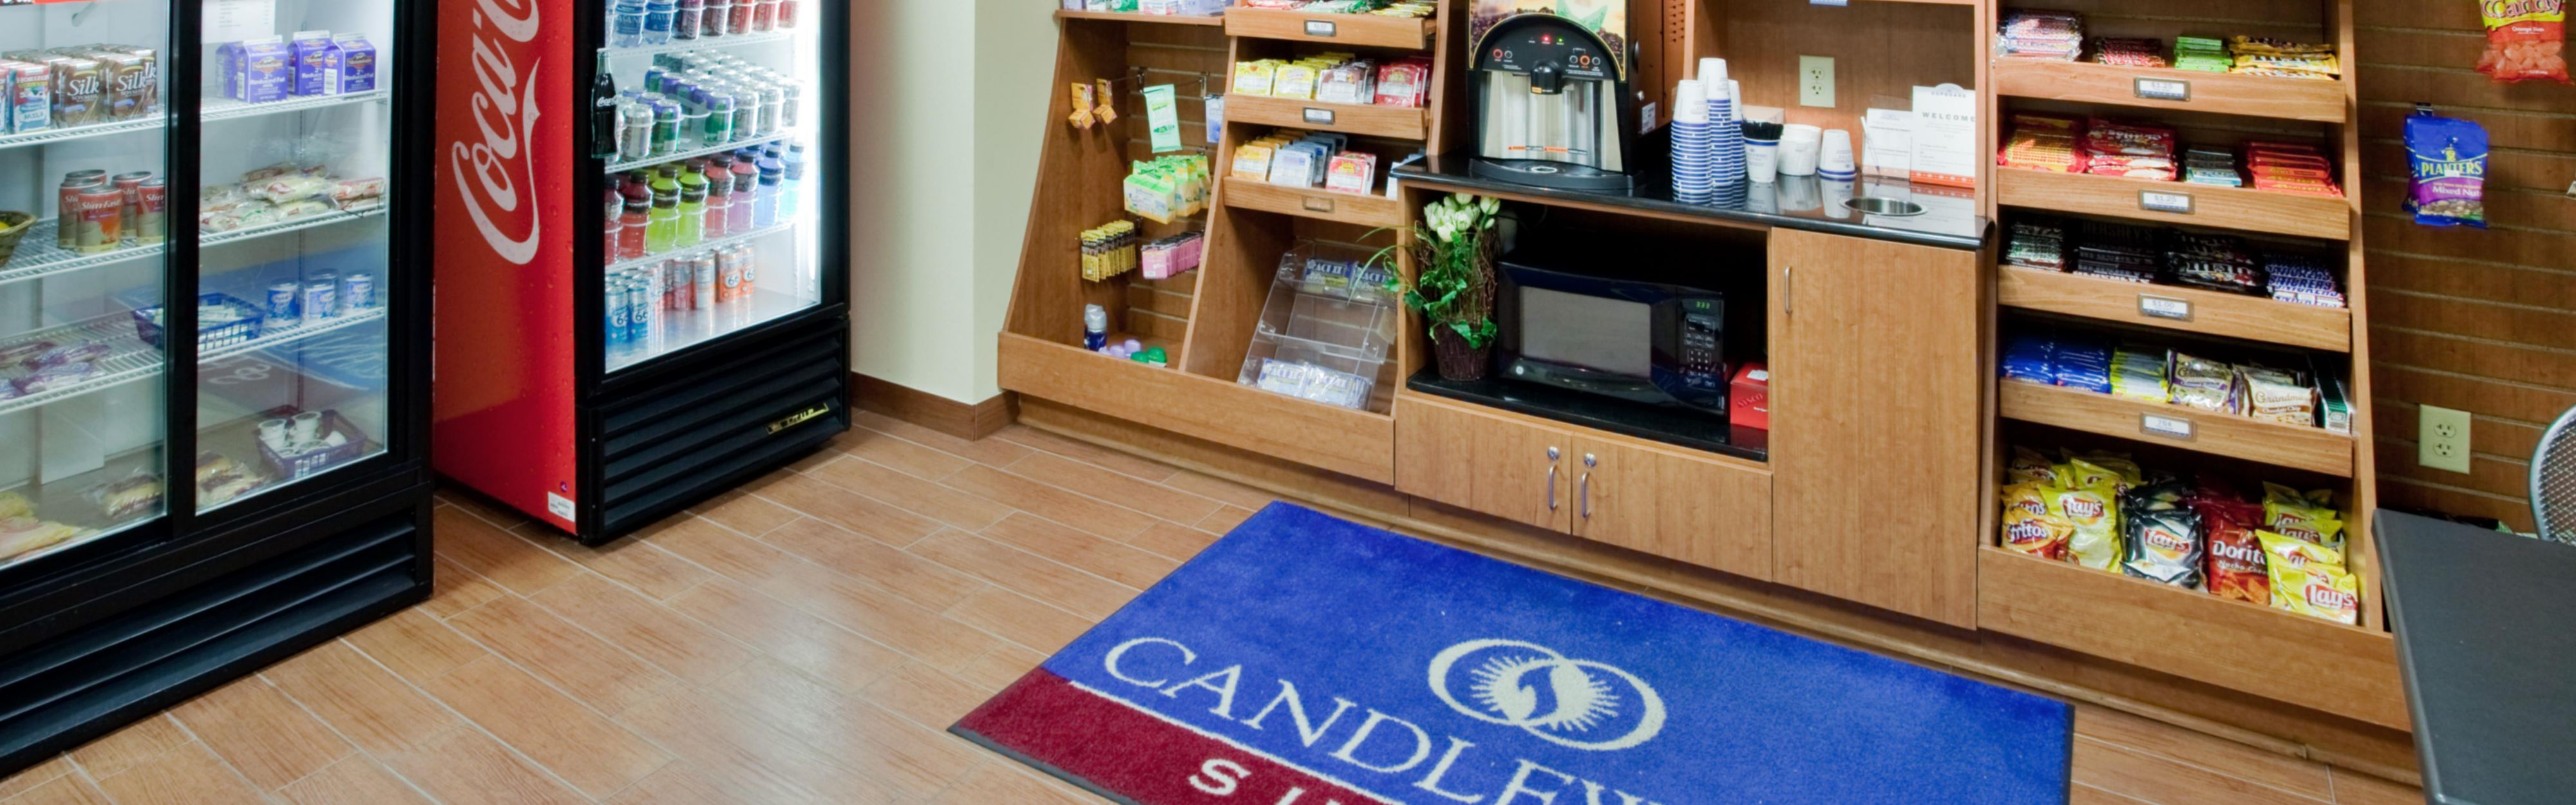 Candlewood Suites Richmond Airport image 2